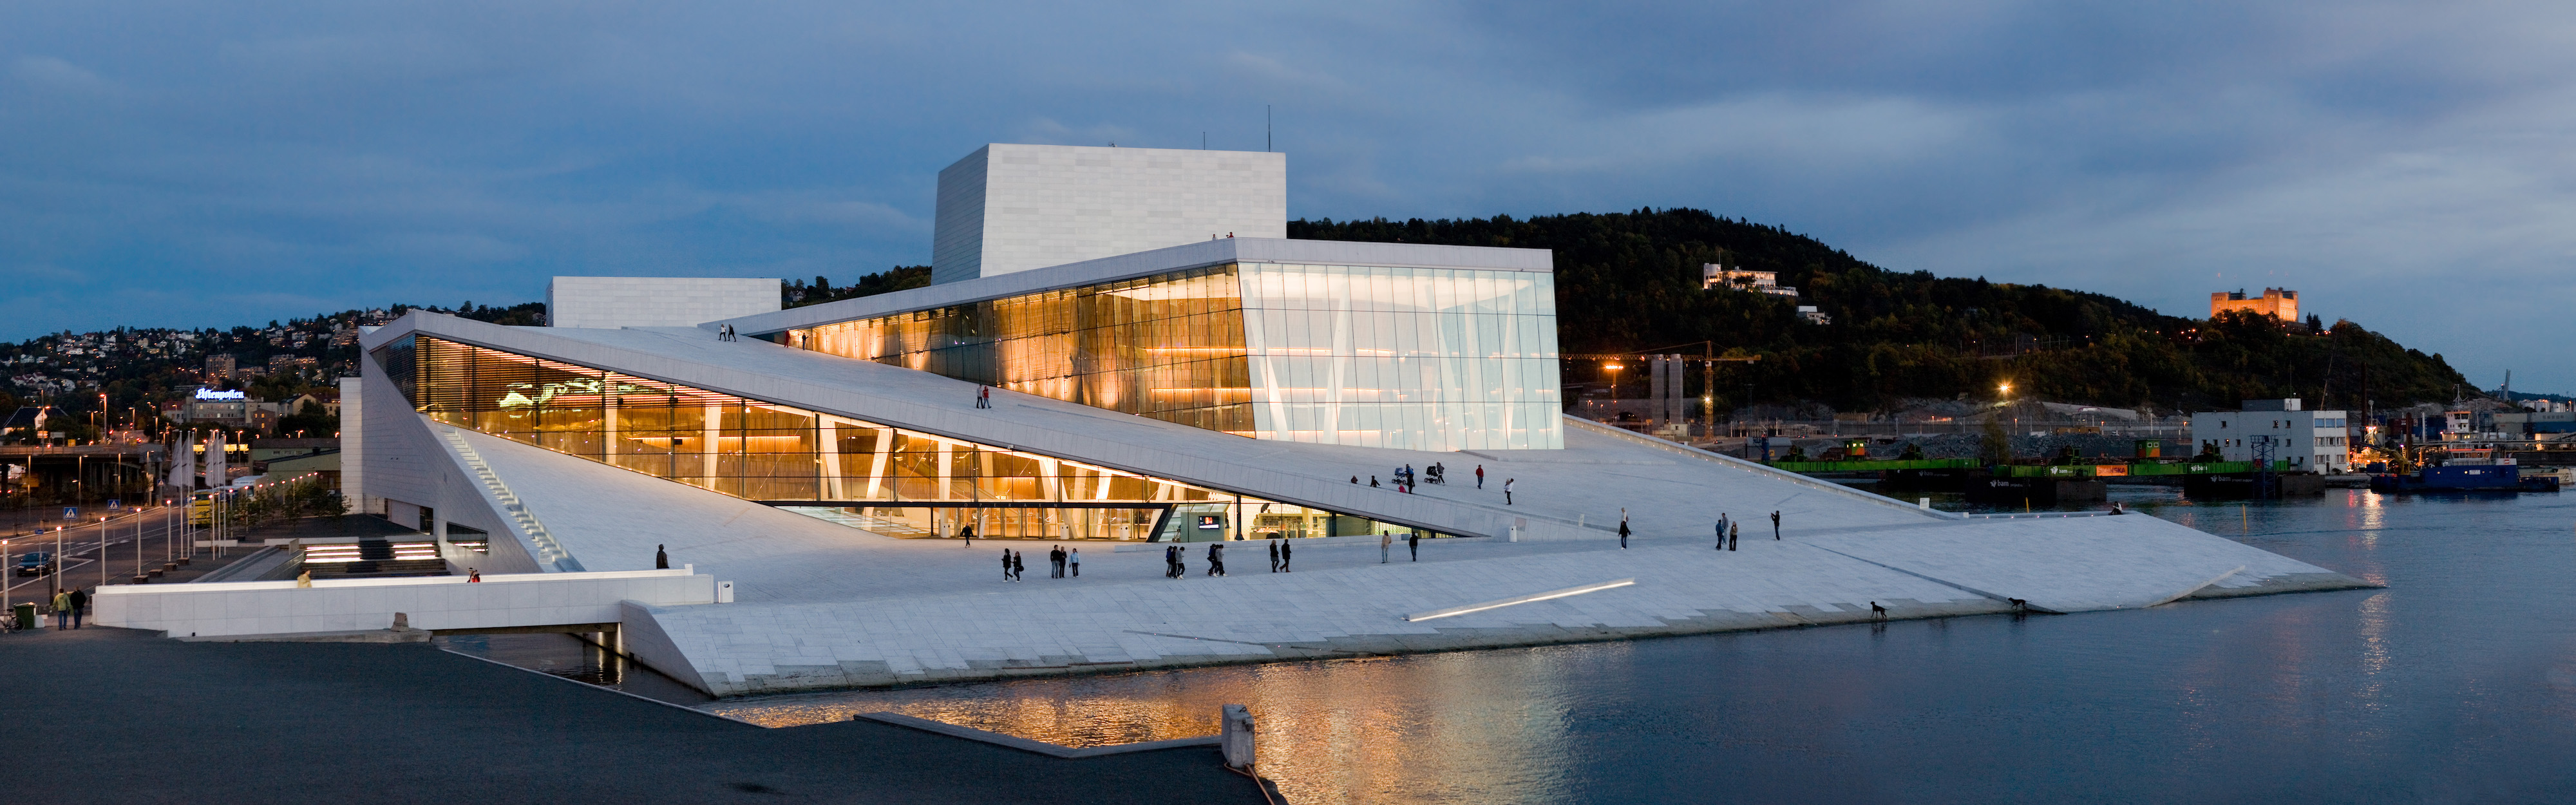 Opéra d'Oslo, Norvège. Source : Most beautiful Spots.